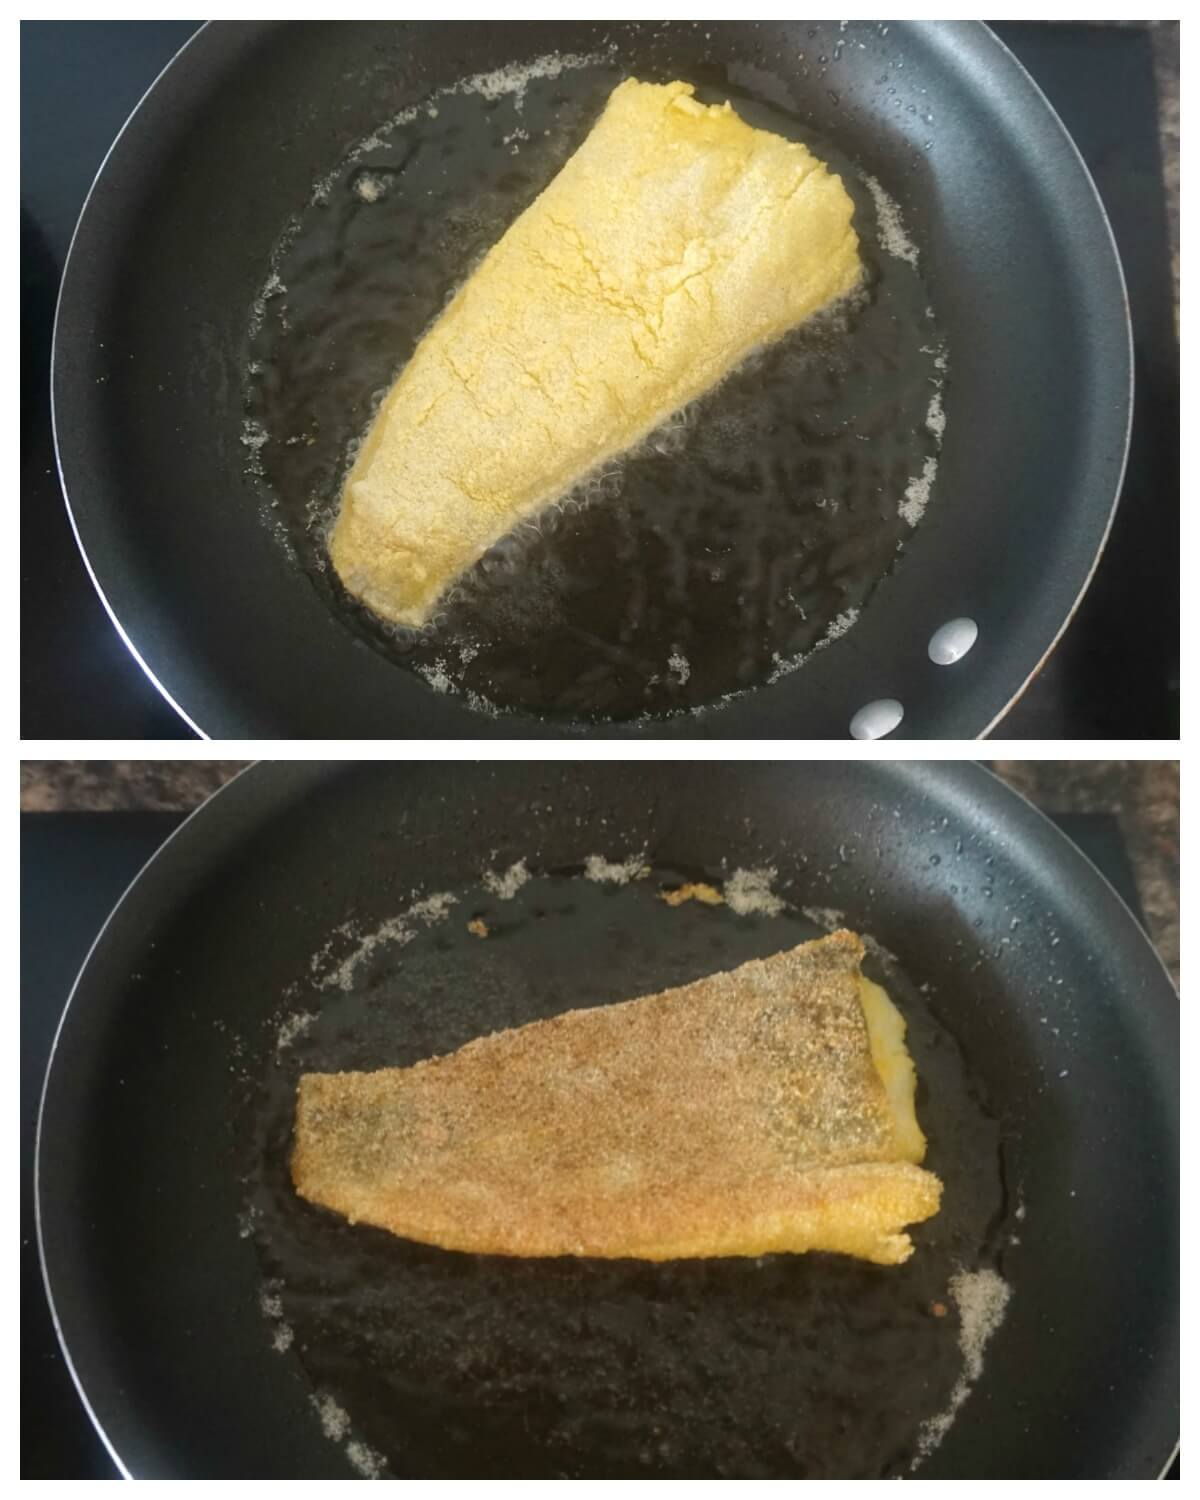 Collage of 2 photos to show how to make cornmeal-crusted fried cod fillet